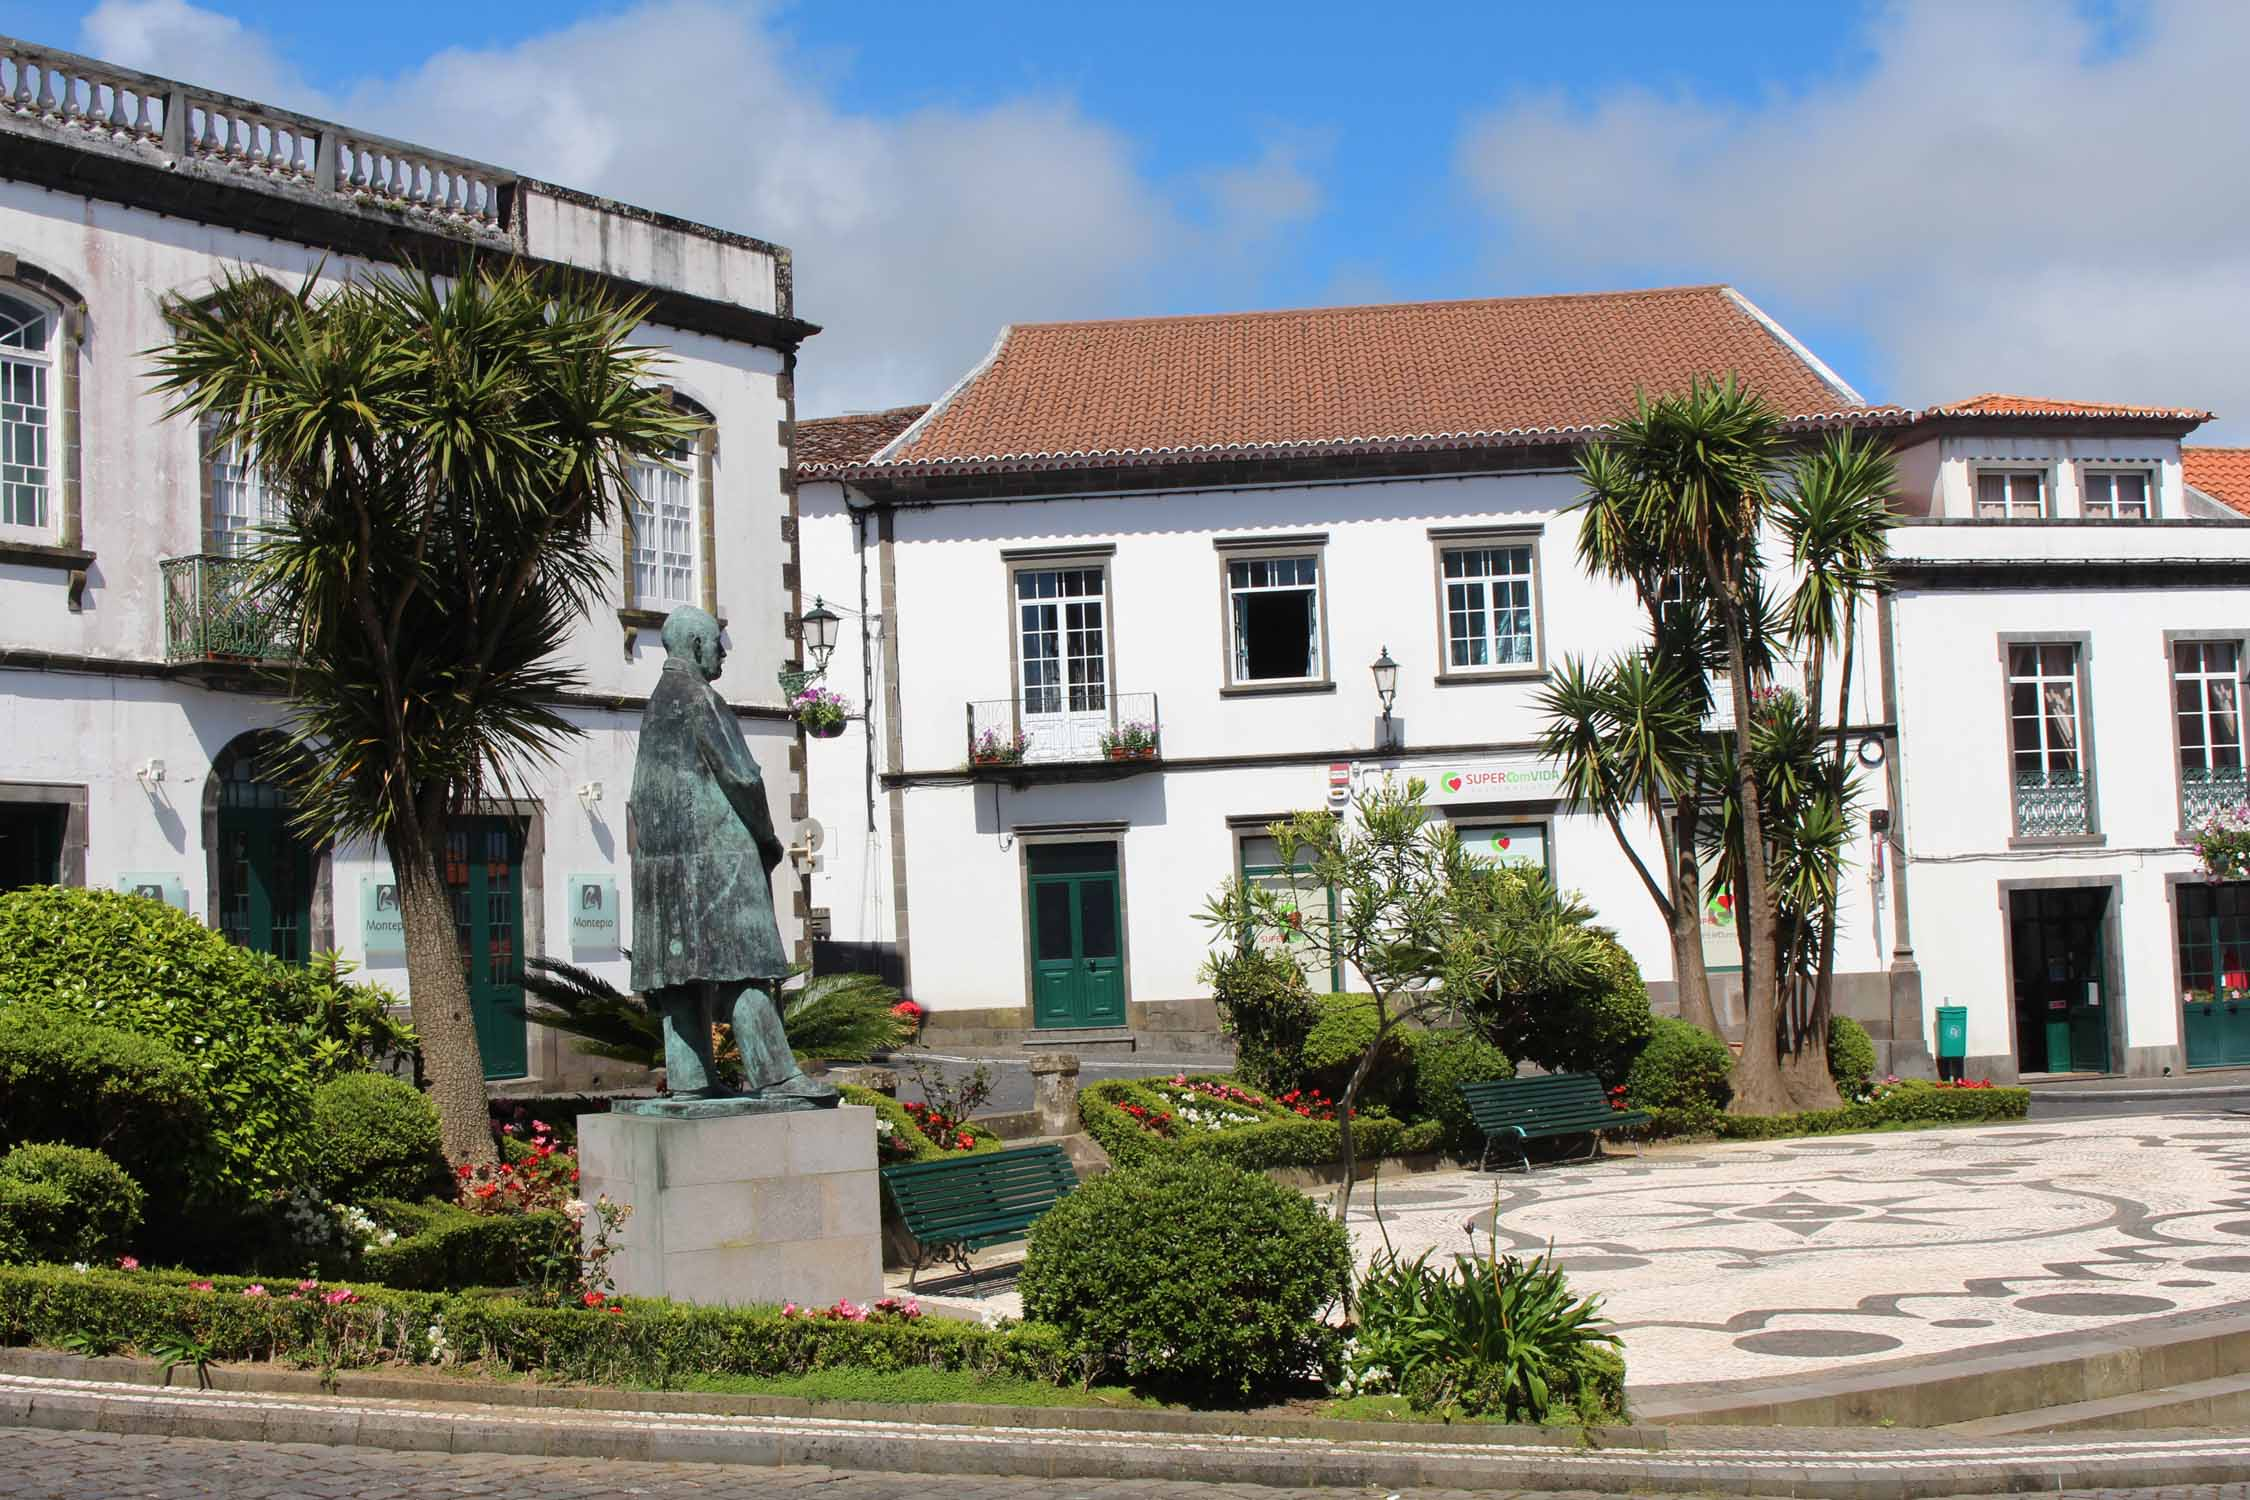 A square in Nordeste in São Miguel island, Azores